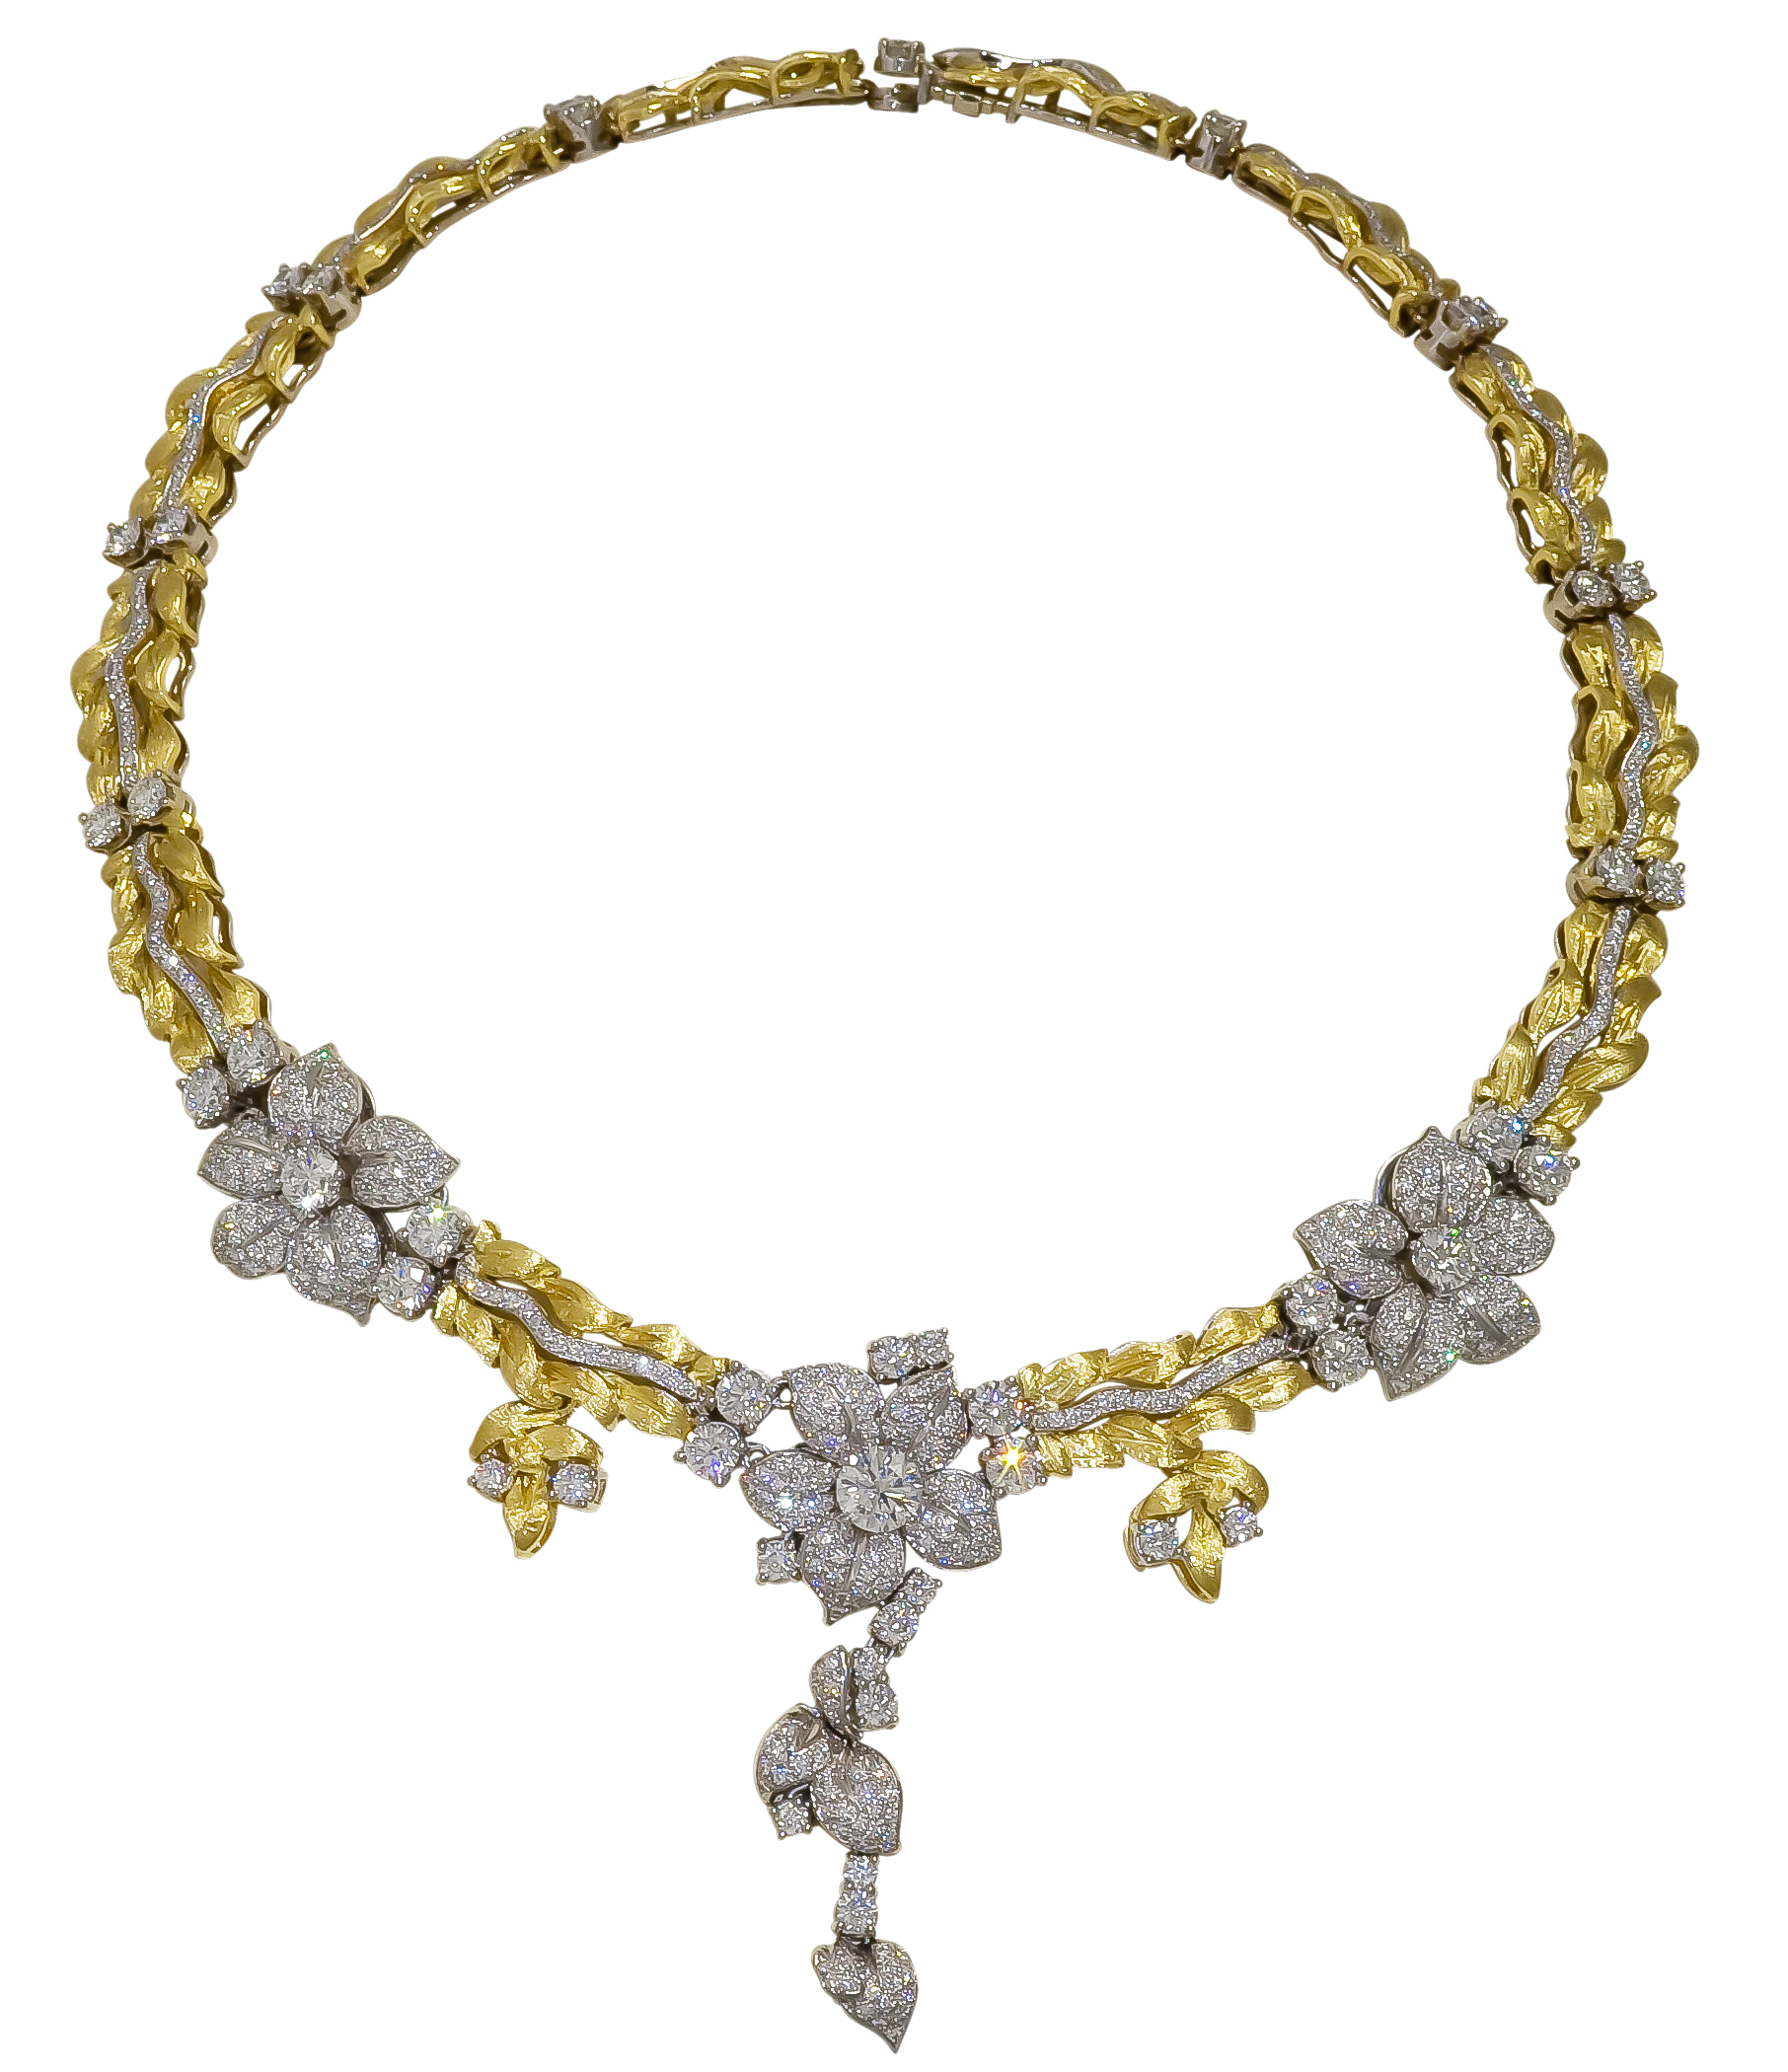 Grand Floral Bouquet Necklace with Diamonds and 18K Gold